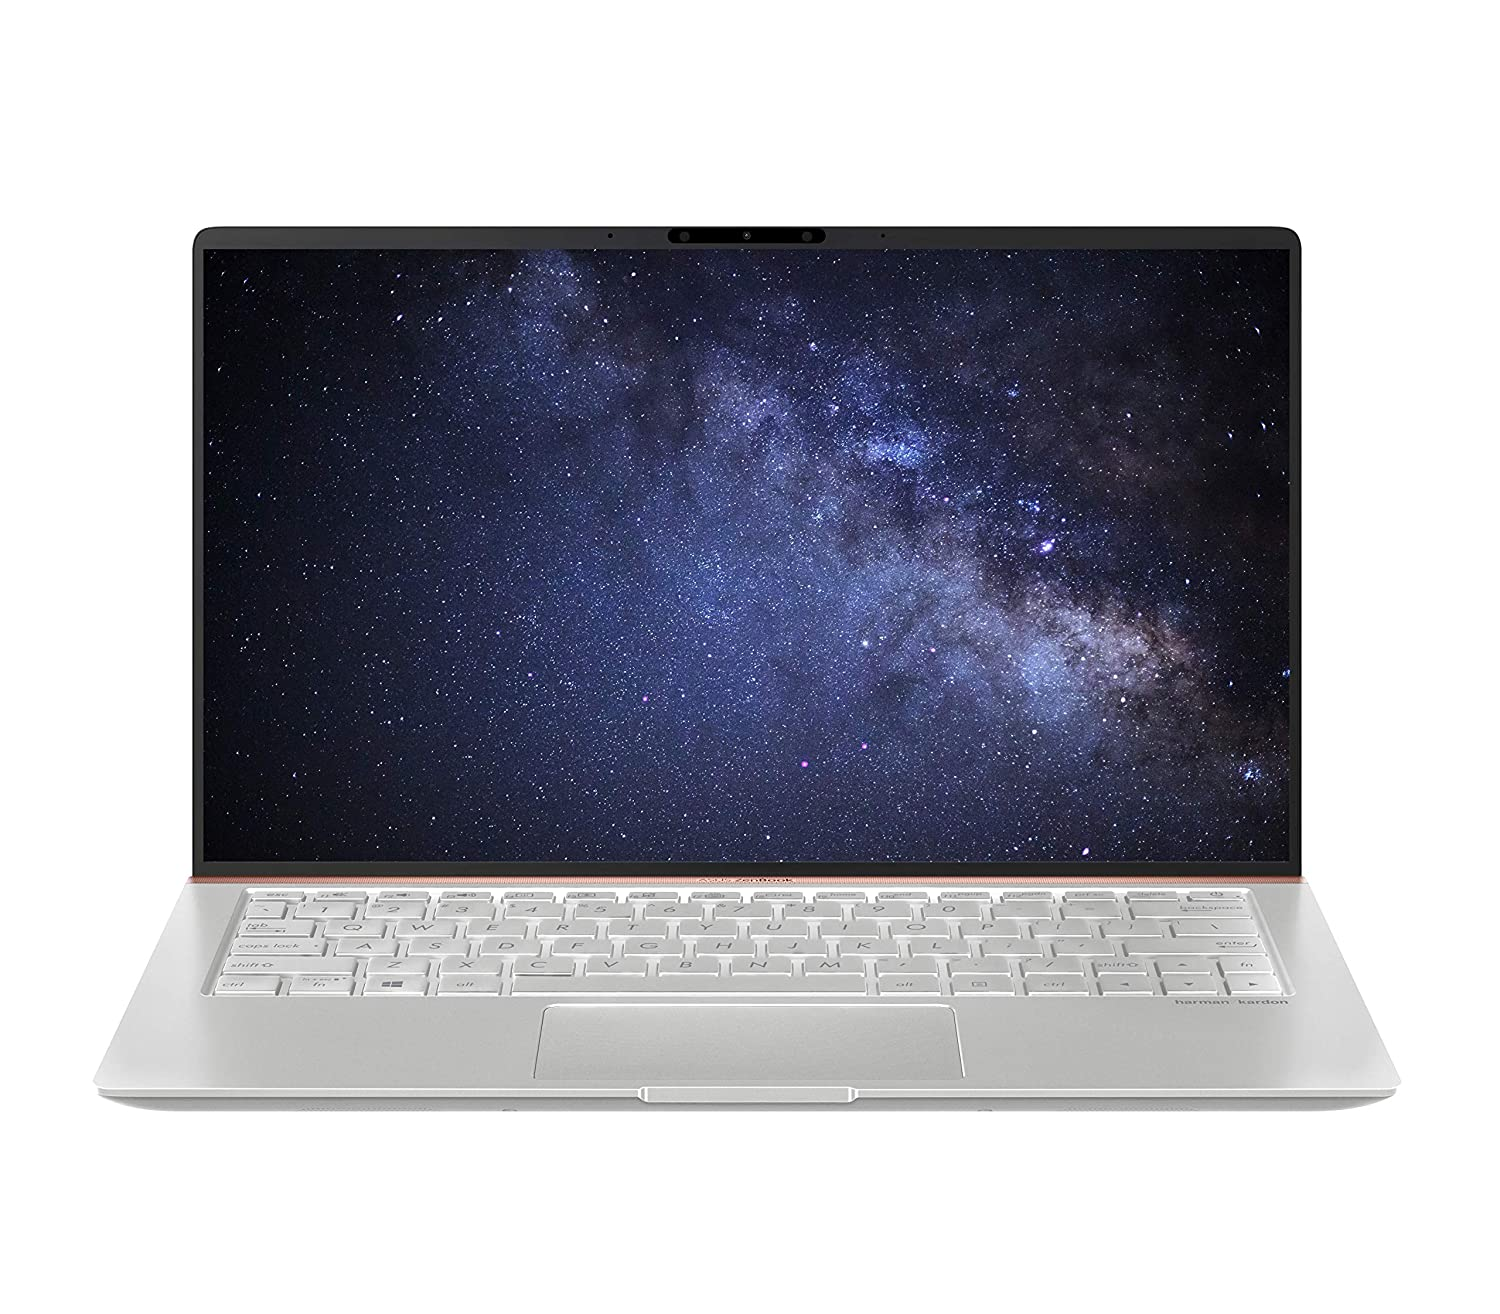 [Apply Coupon]ASUS ZenBook 14 UX433FA-A6106T 14-inch FHD Thin and Light Laptop (8th Gen Intel Core i5-8265U/8GB RAM/512GB PCIe SSD/Windows 10/Integrated Graphics/1.19 Kg), Icicle Silver Metal